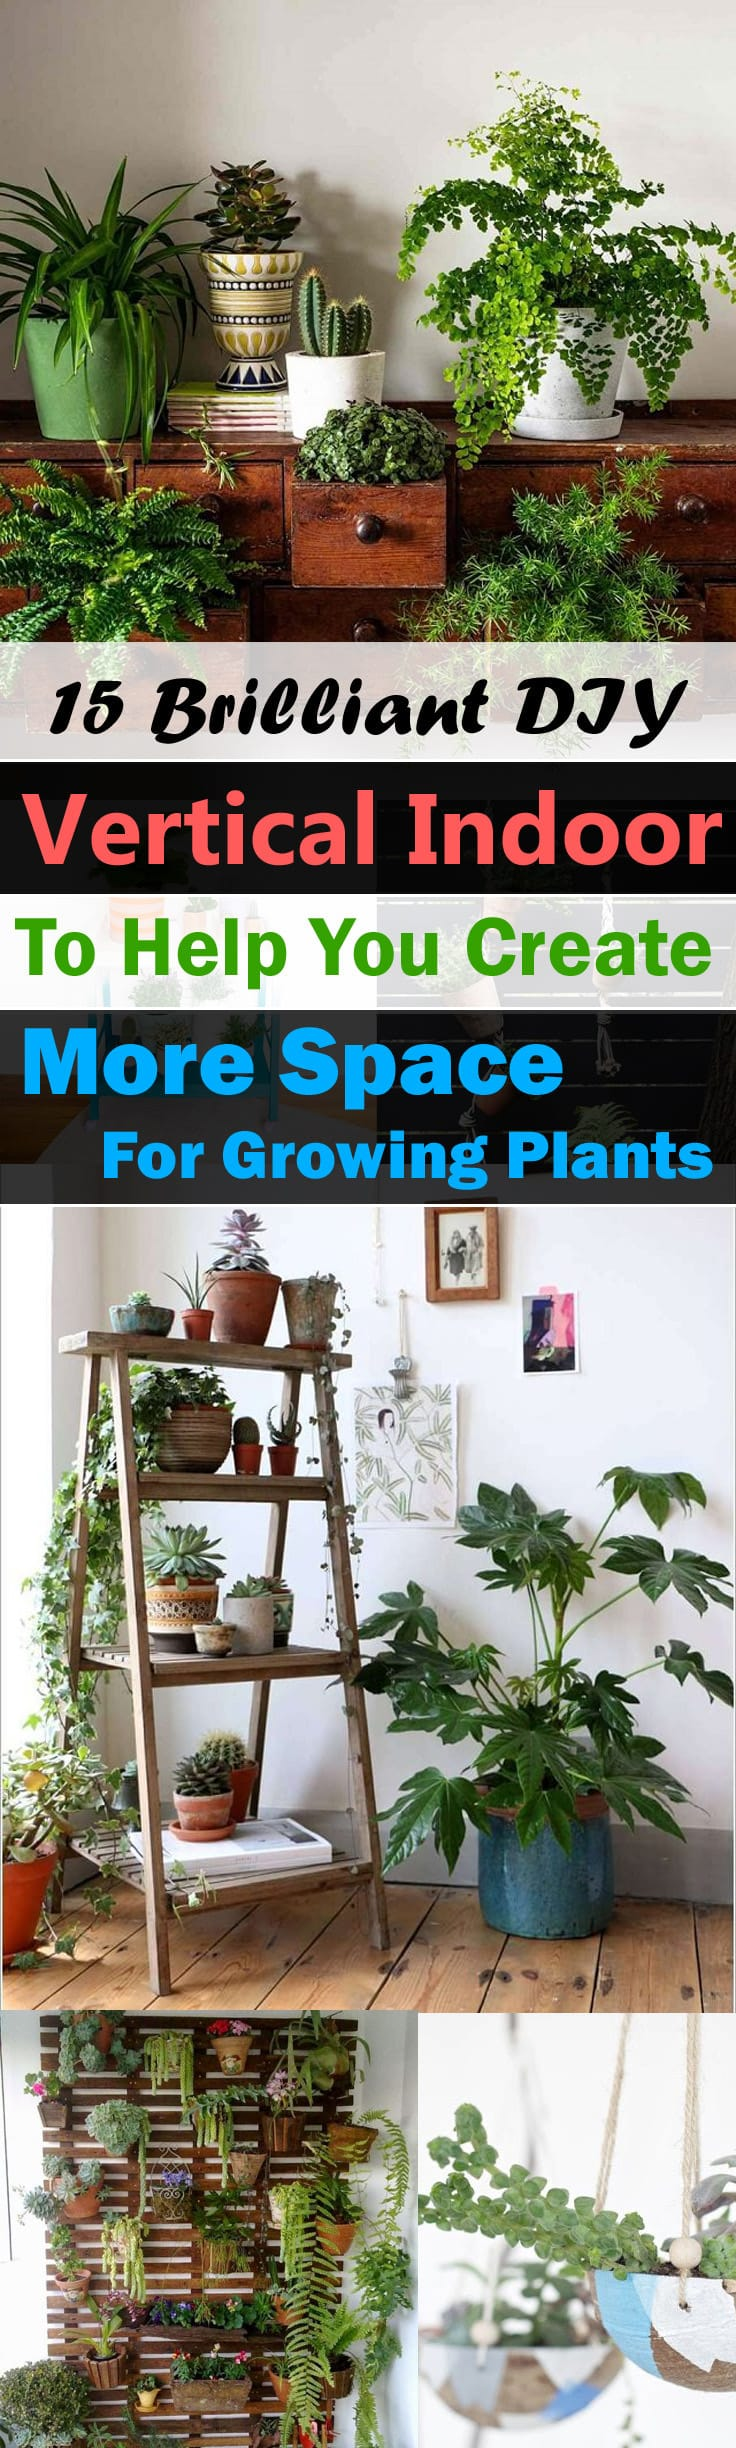 Vertical Indoor Garden 15 brilliant diy vertical indoor garden ideas to help you create indoor gardening can be a challenge if youre short of space and workwithnaturefo